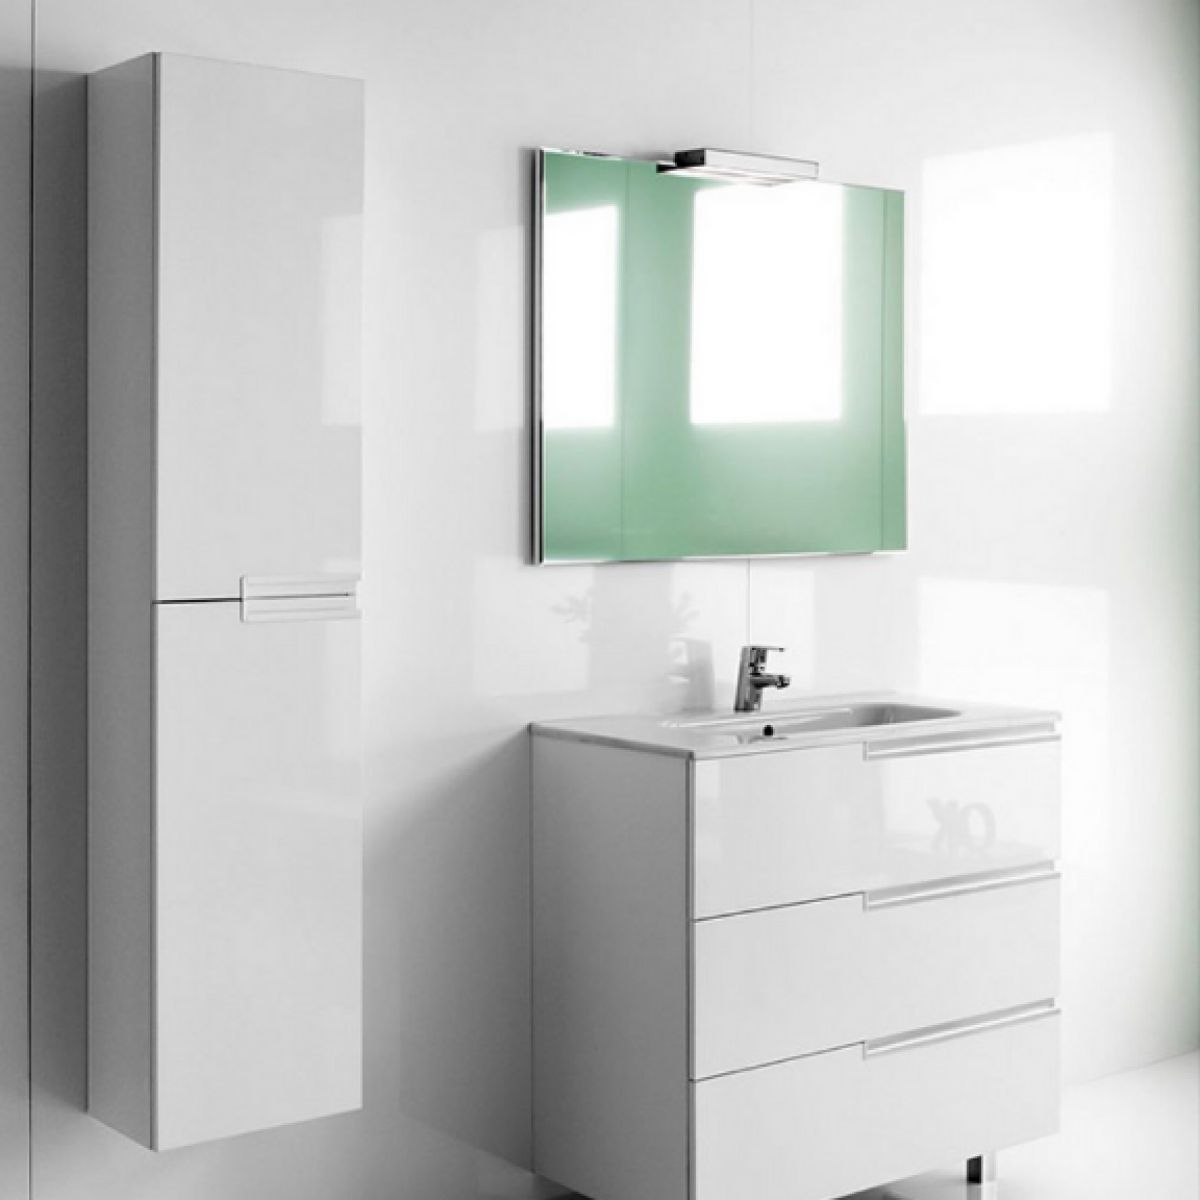 Roca Victoria-N Tall Column Unit : UK Bathrooms